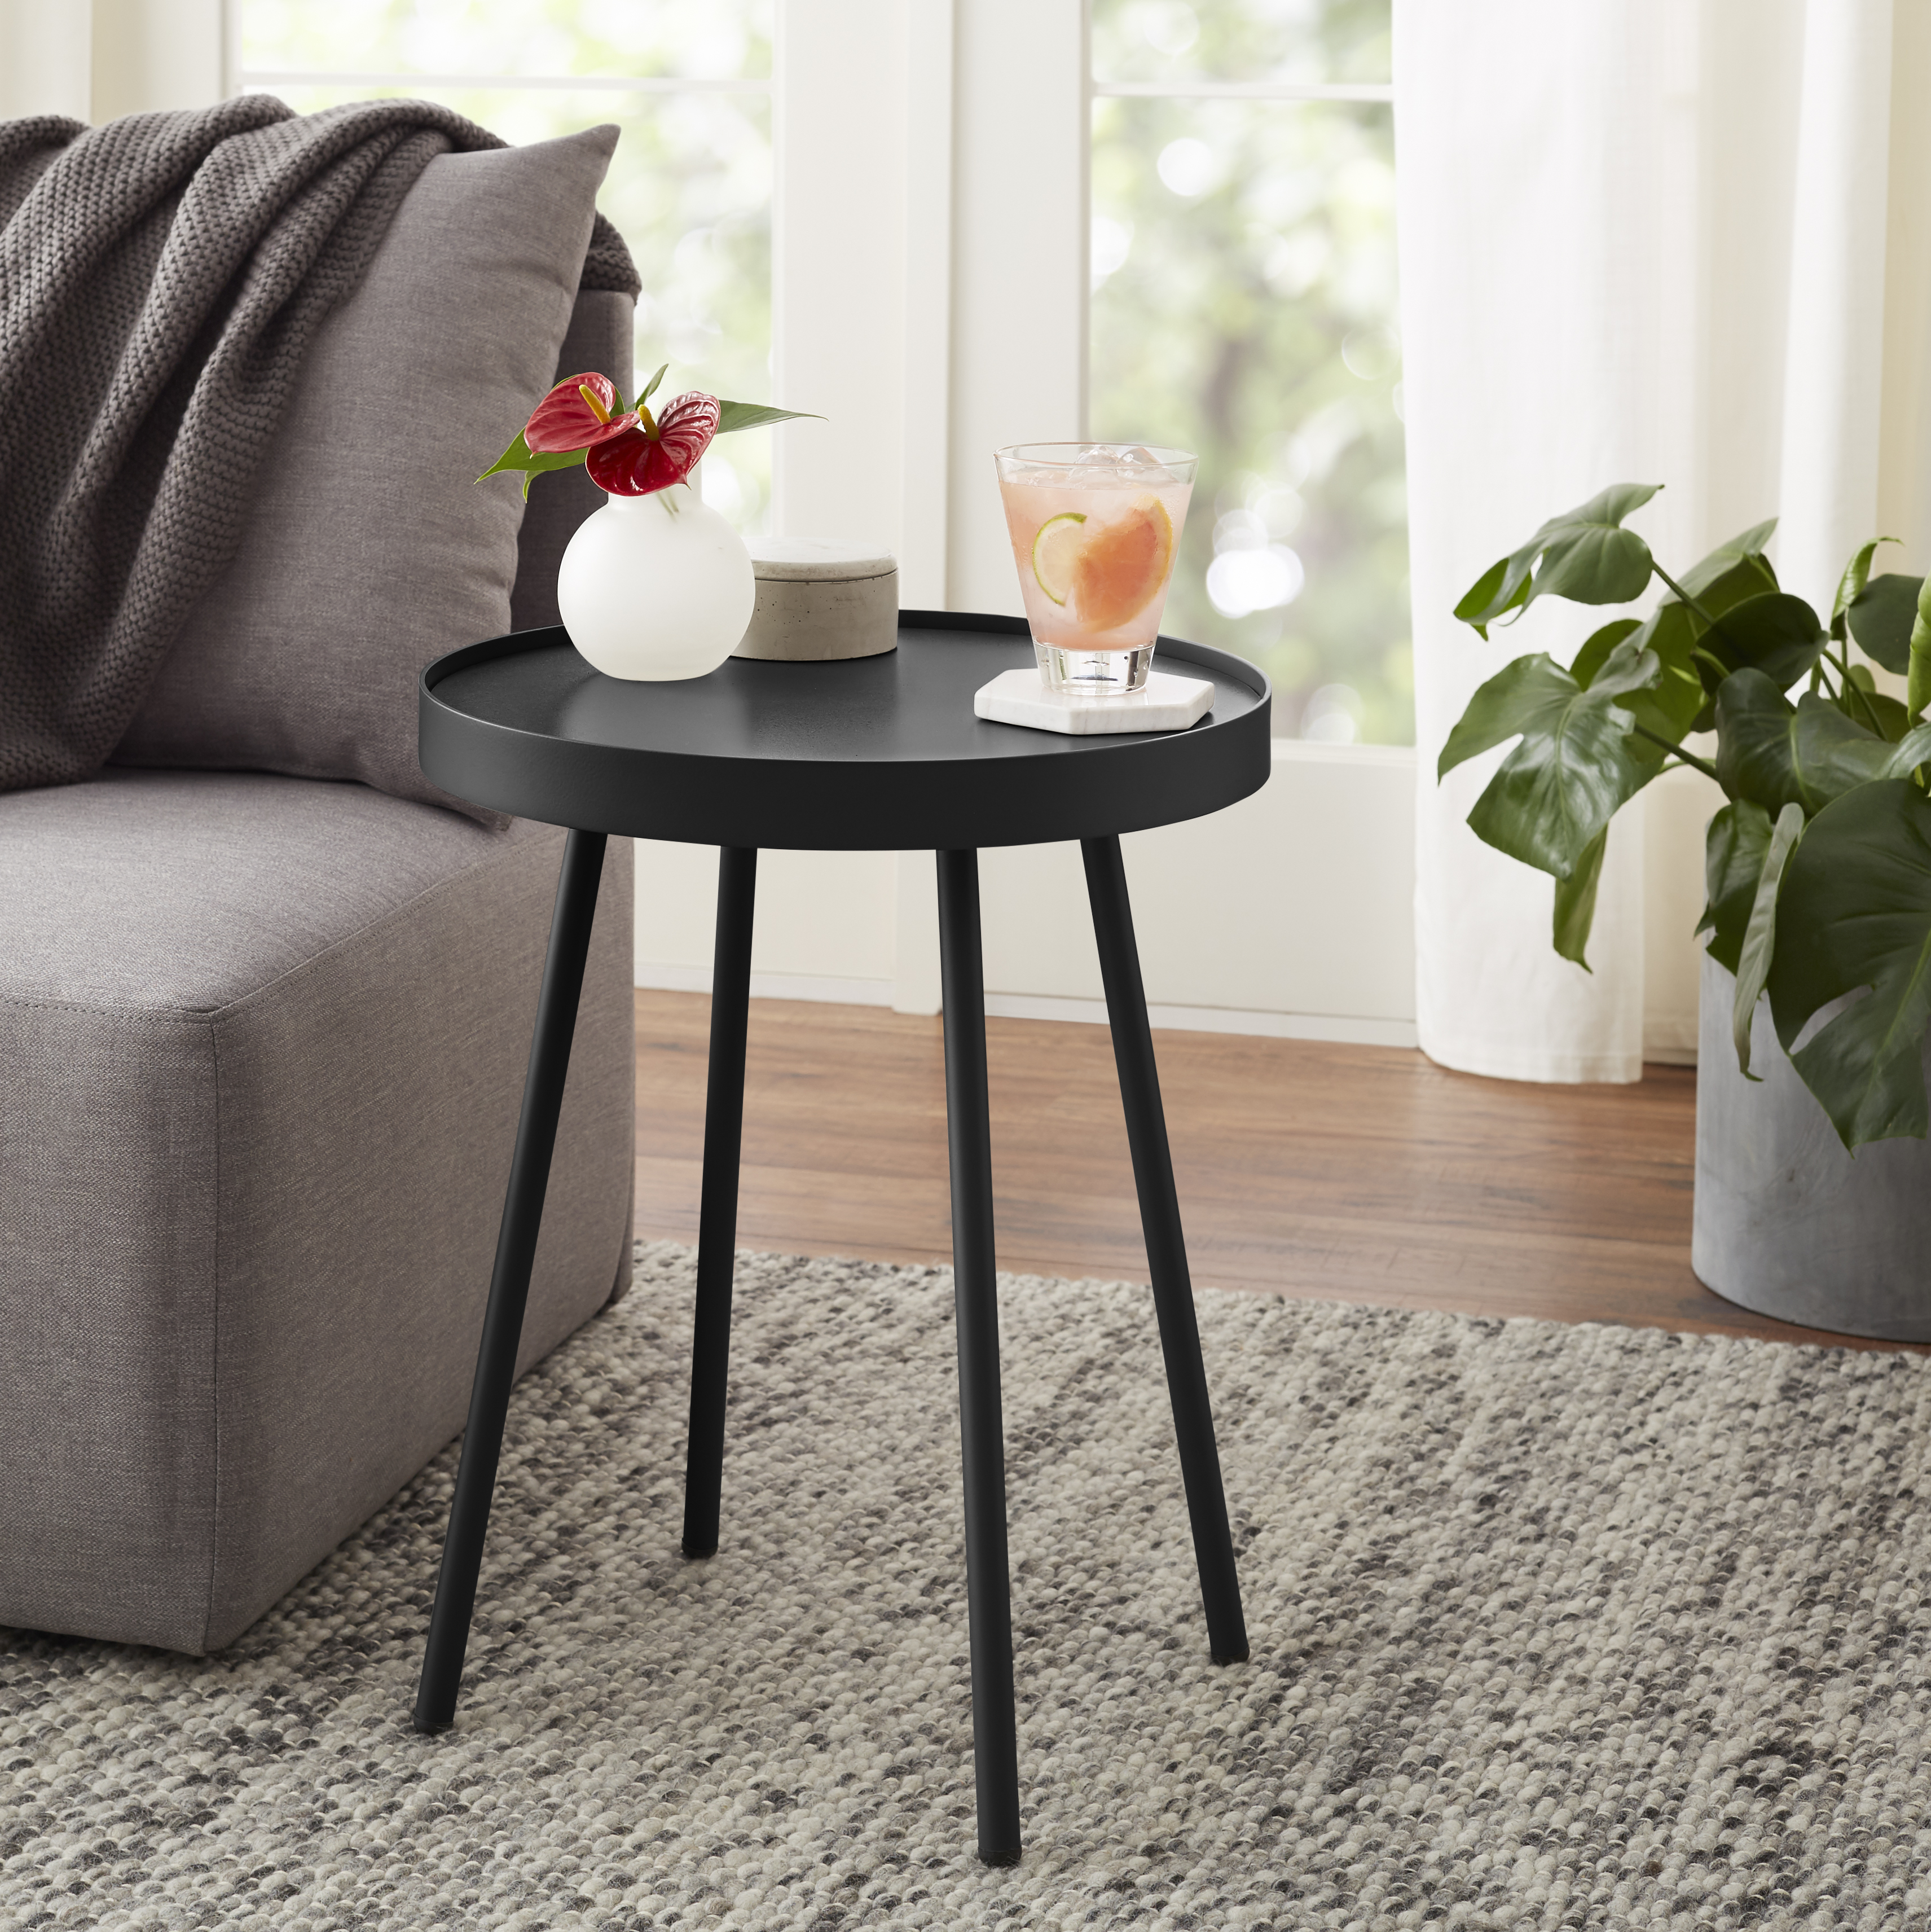 mainstays arlo round accent table multiple finishes quatrefoil side meyda tiffany lamps pool lounge chairs bunnings acrylic console wells furniture plus ozark trail tumbler